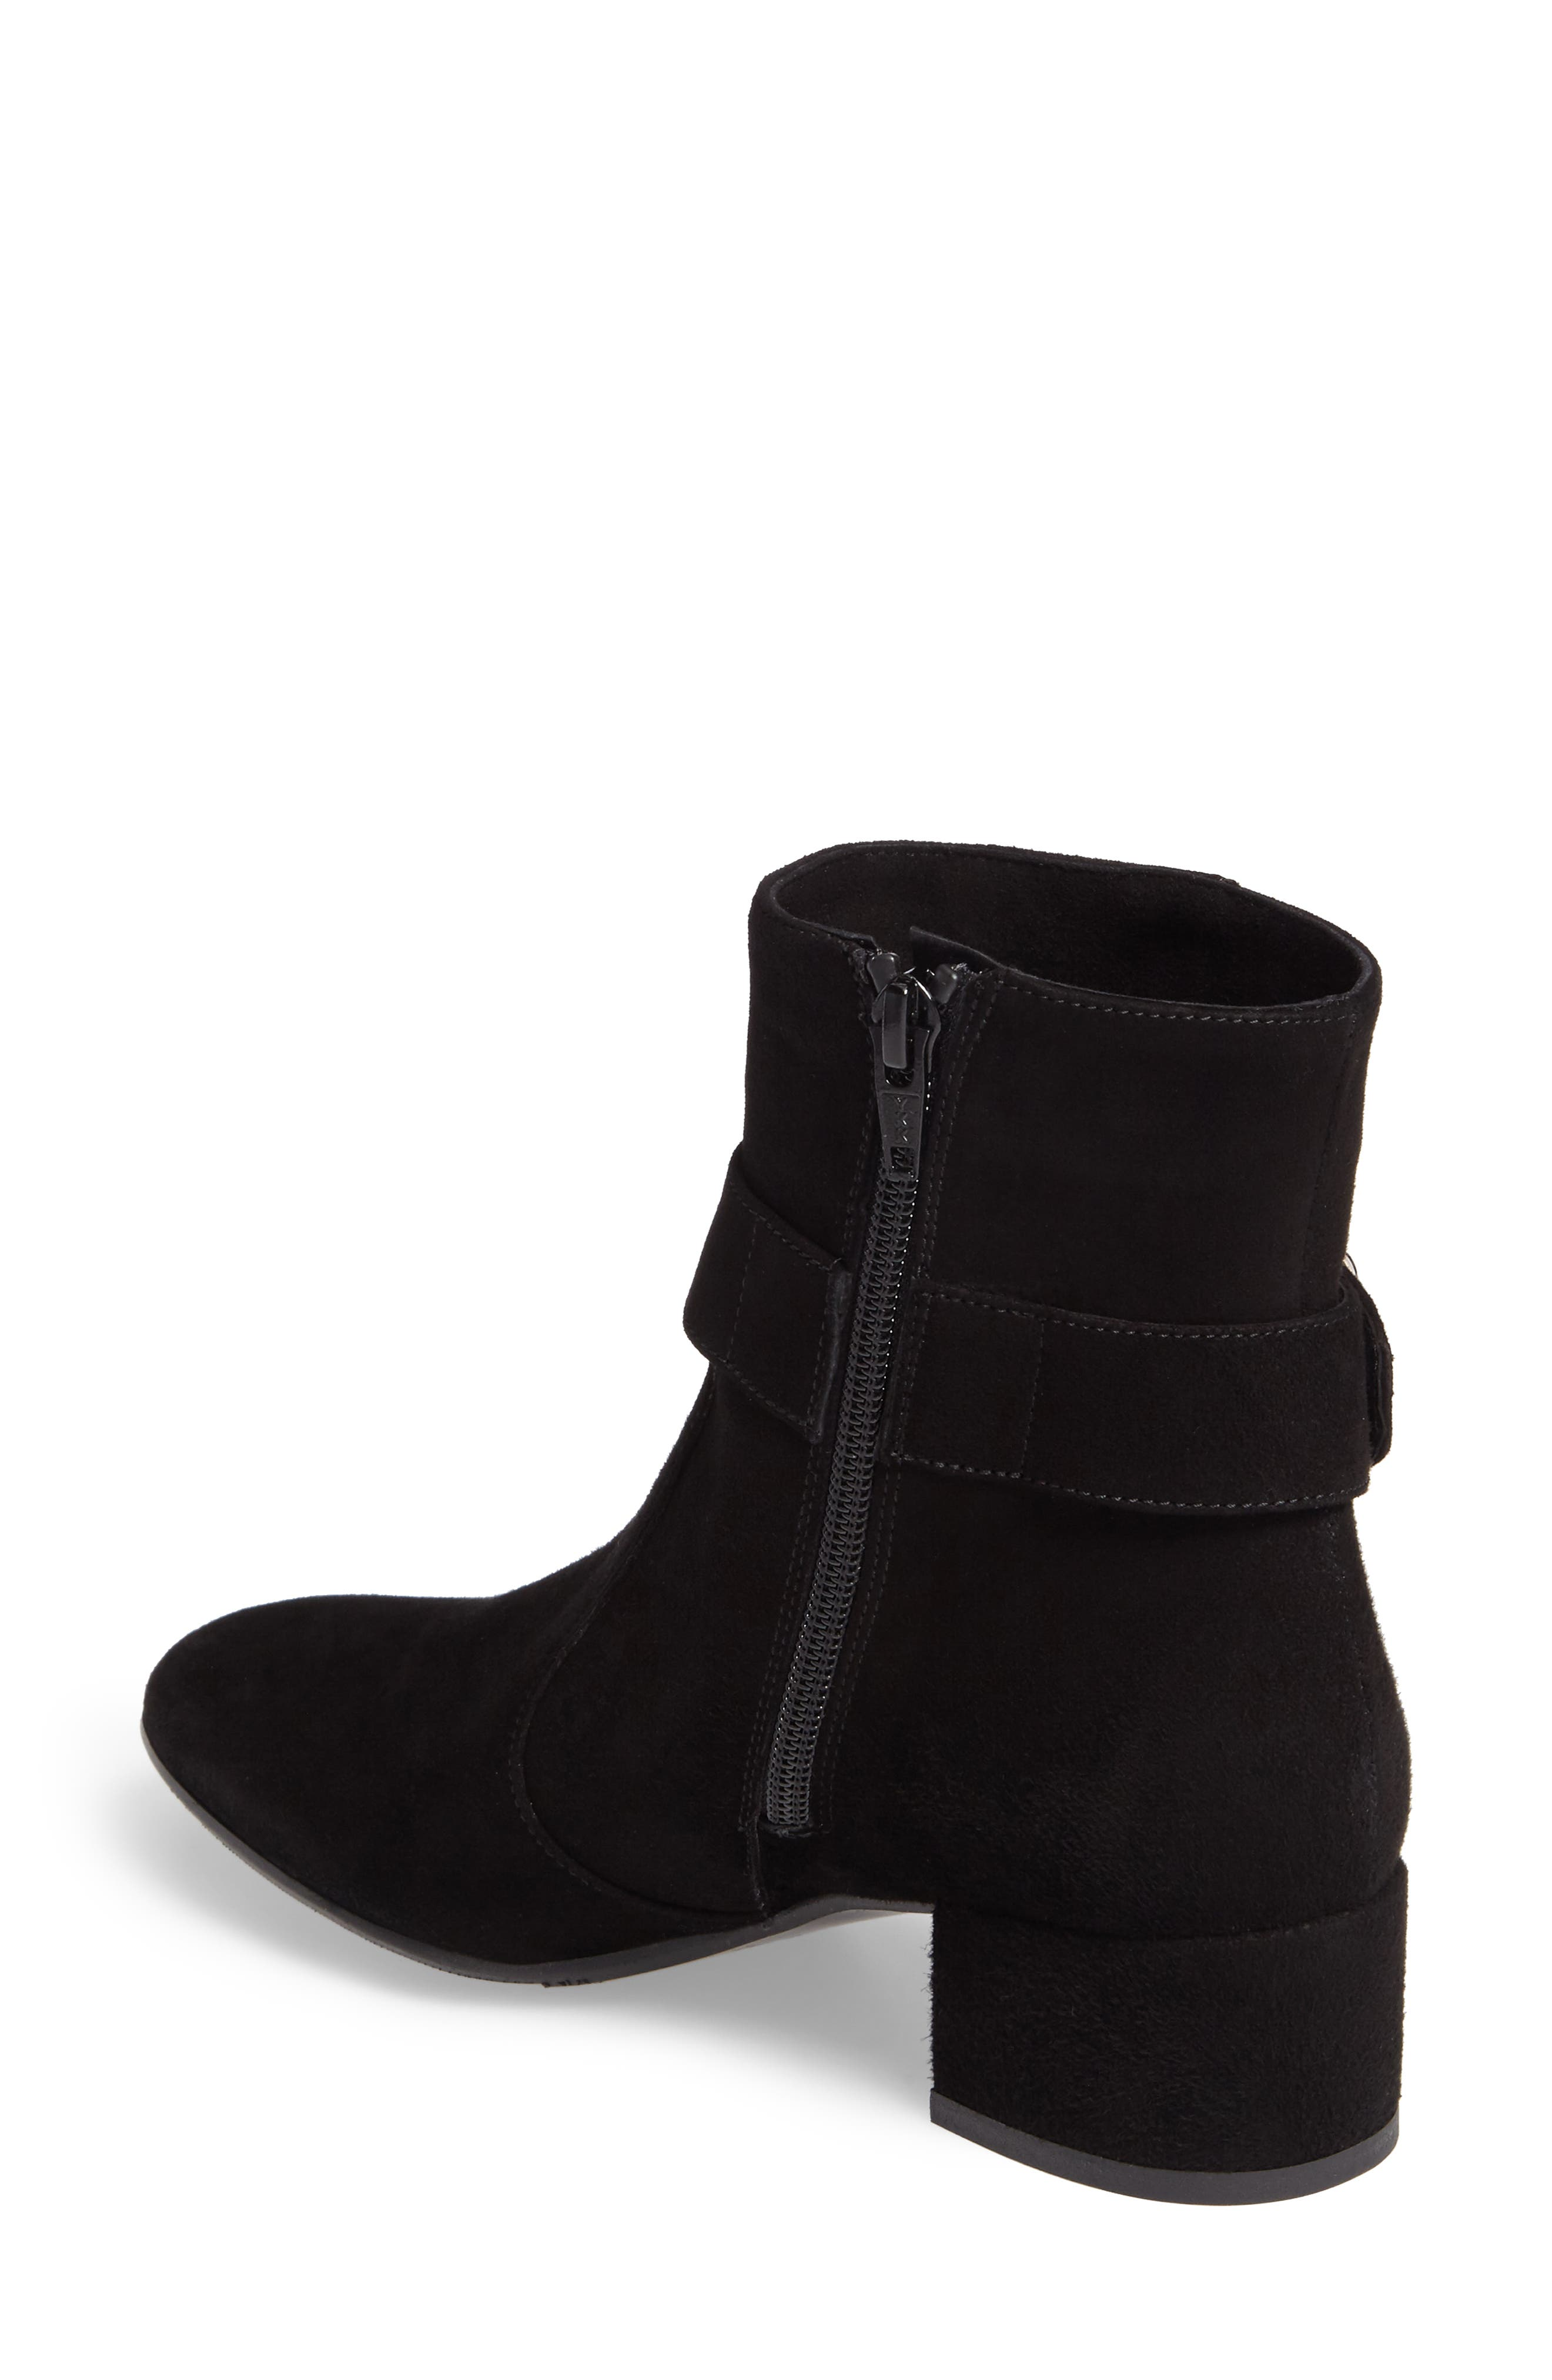 Maddie Buckle Strap Bootie,                             Alternate thumbnail 2, color,                             001